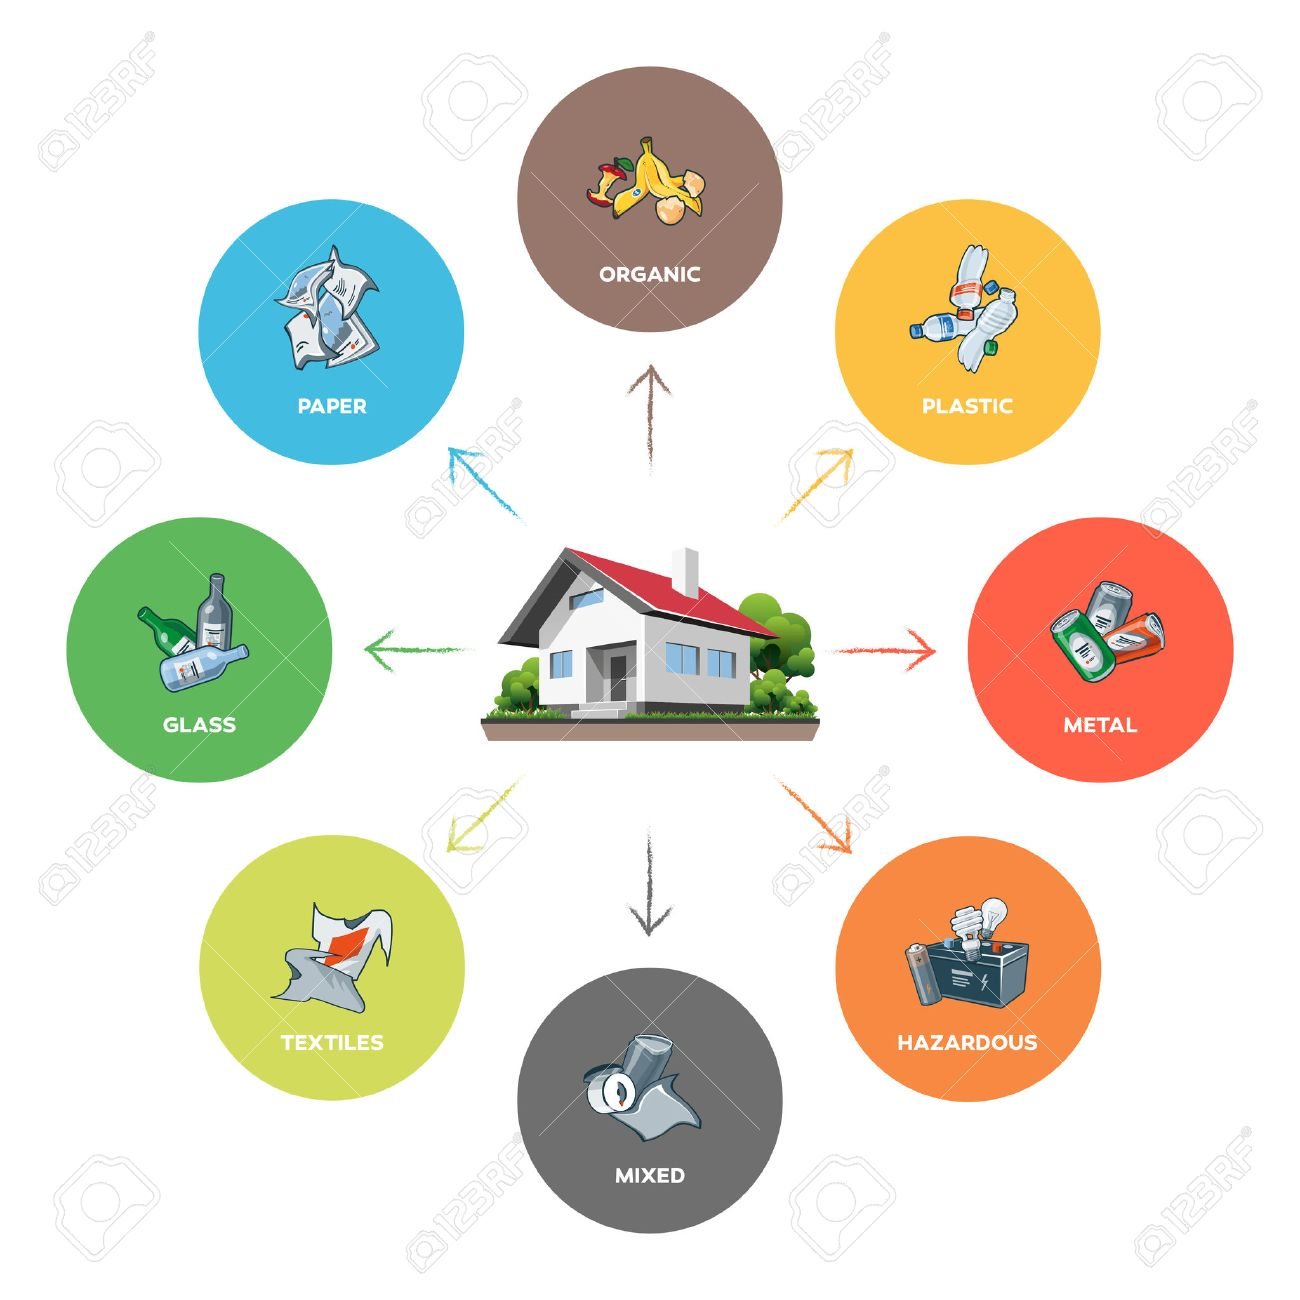 Composition of household waste categories infographic with organic, paper, plastic, glass, metal, textile, hazardous and mixed waste on white background. Waste segregation management concept. - 46038843